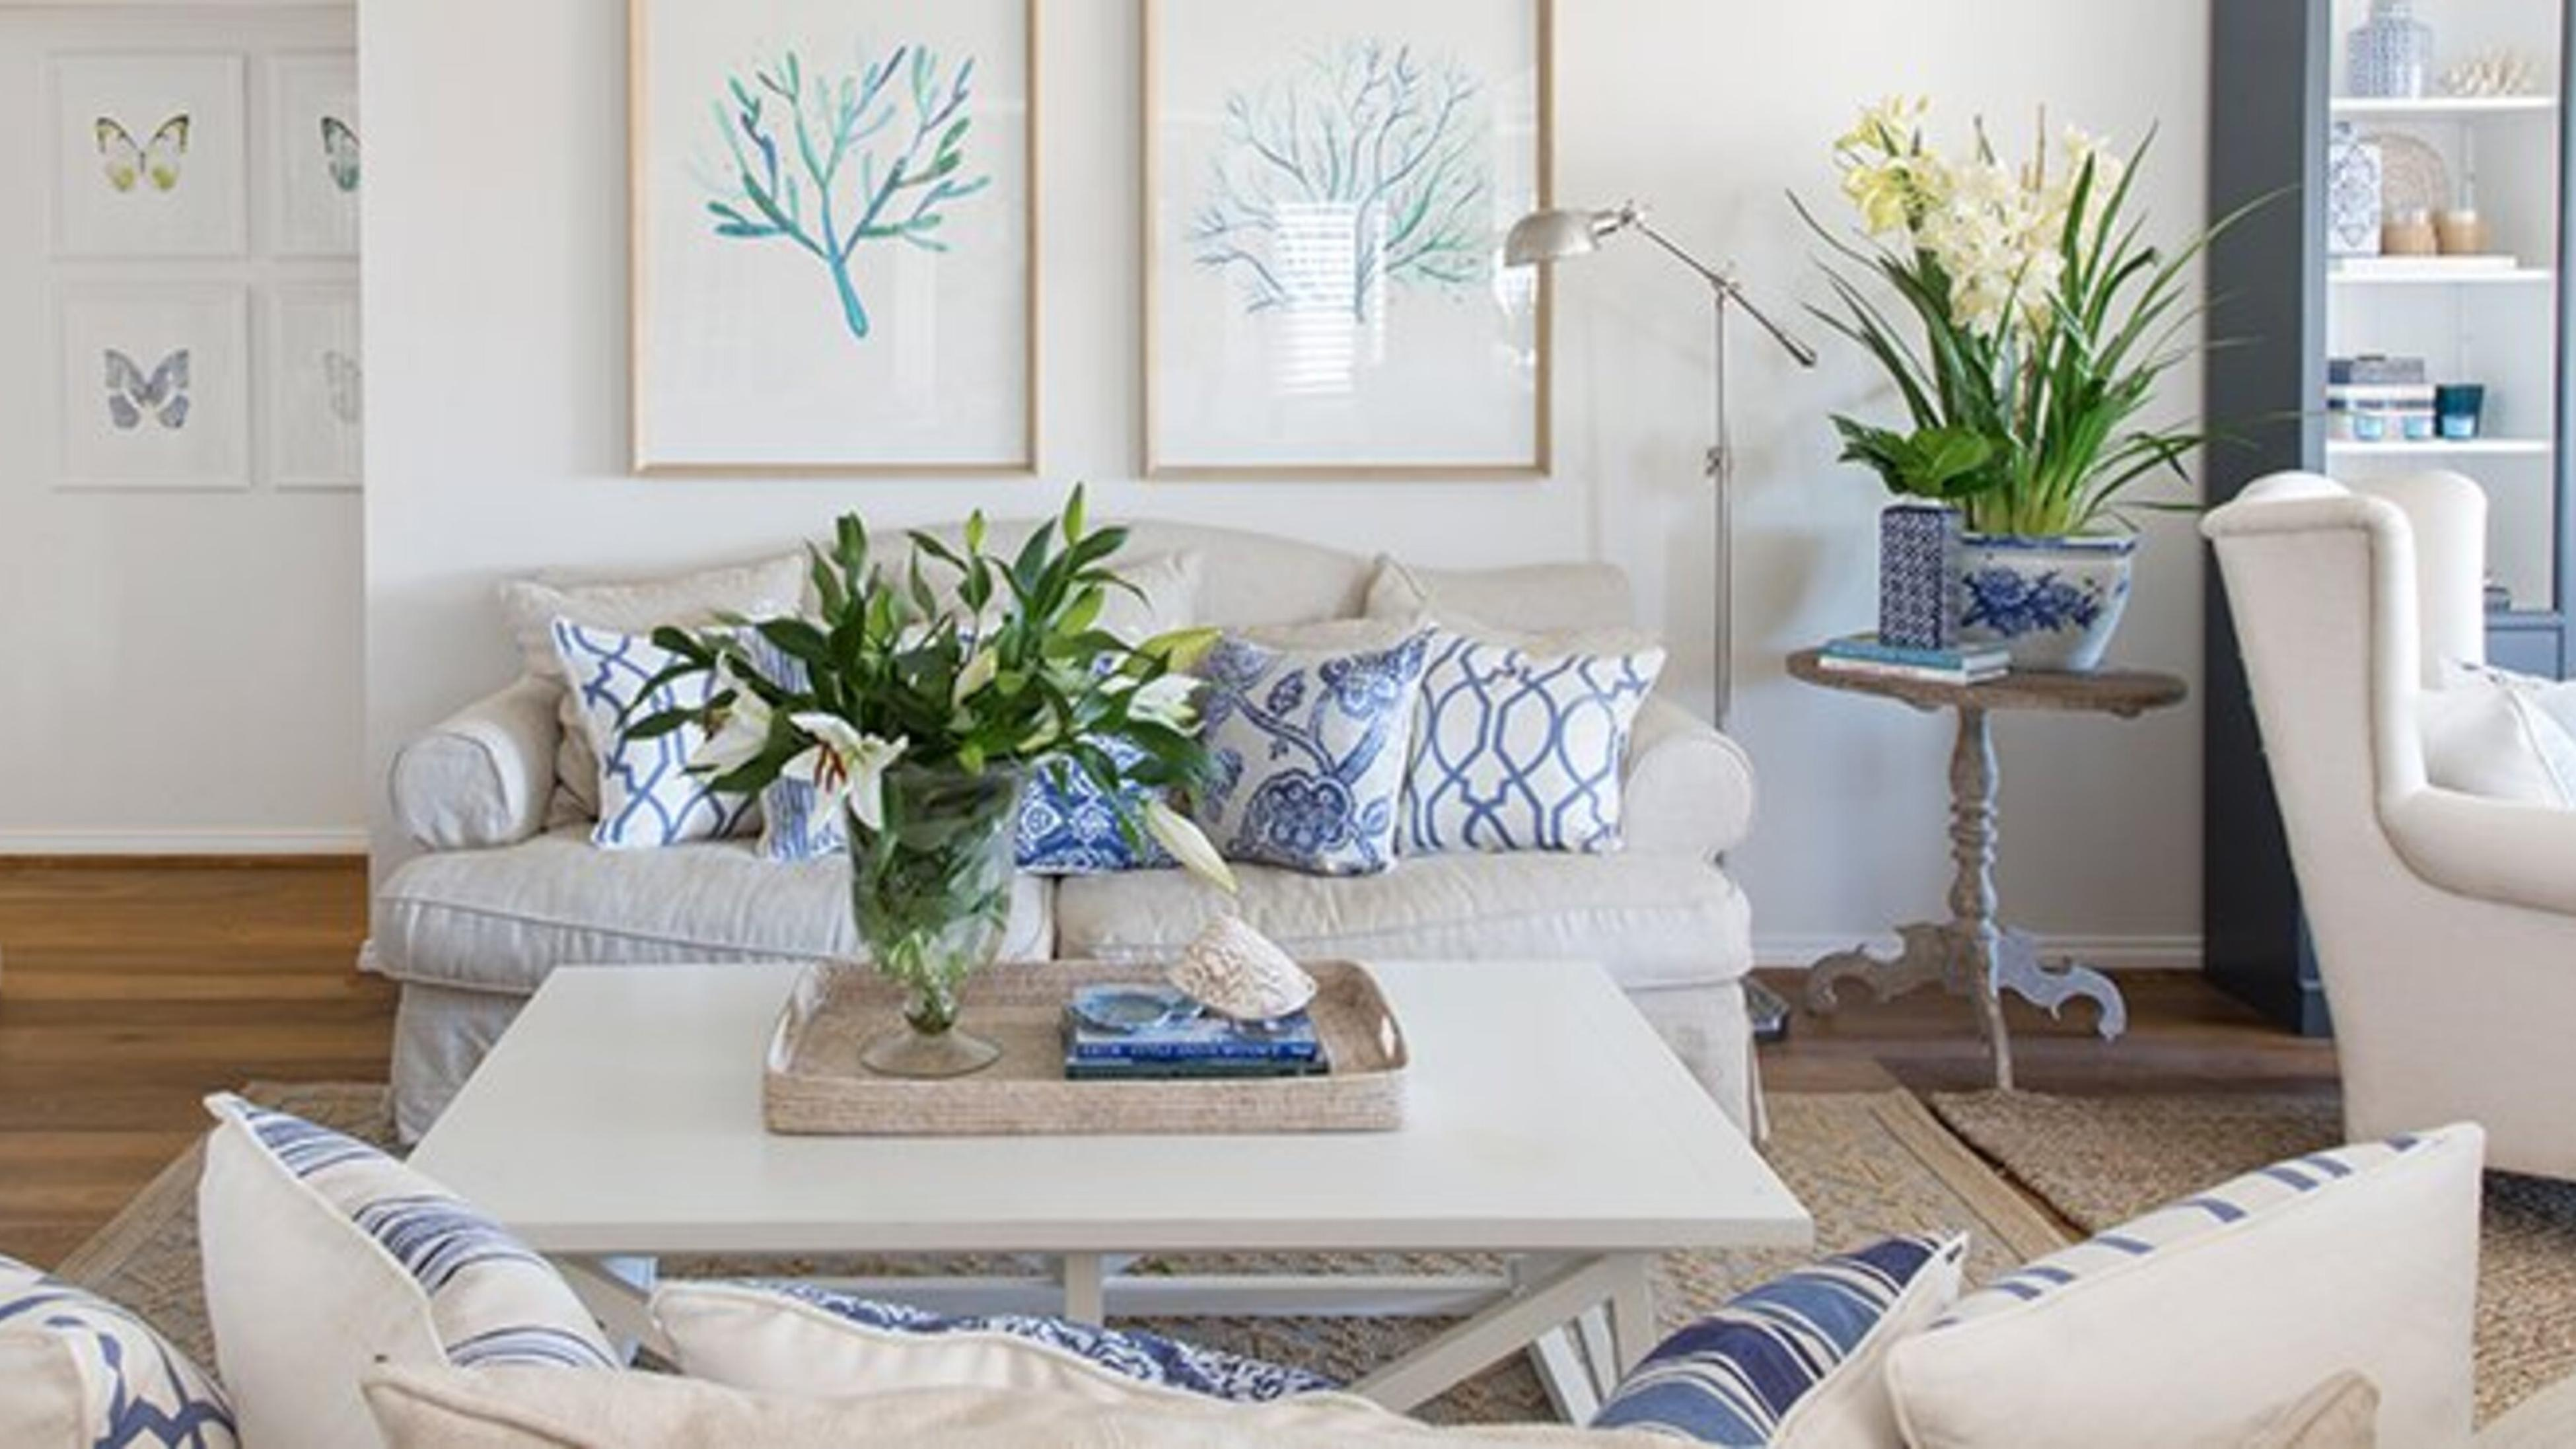 A Hamptons style living area with white couches, blue and white cushions, a white coffee table, wooden floorboards and flowers.